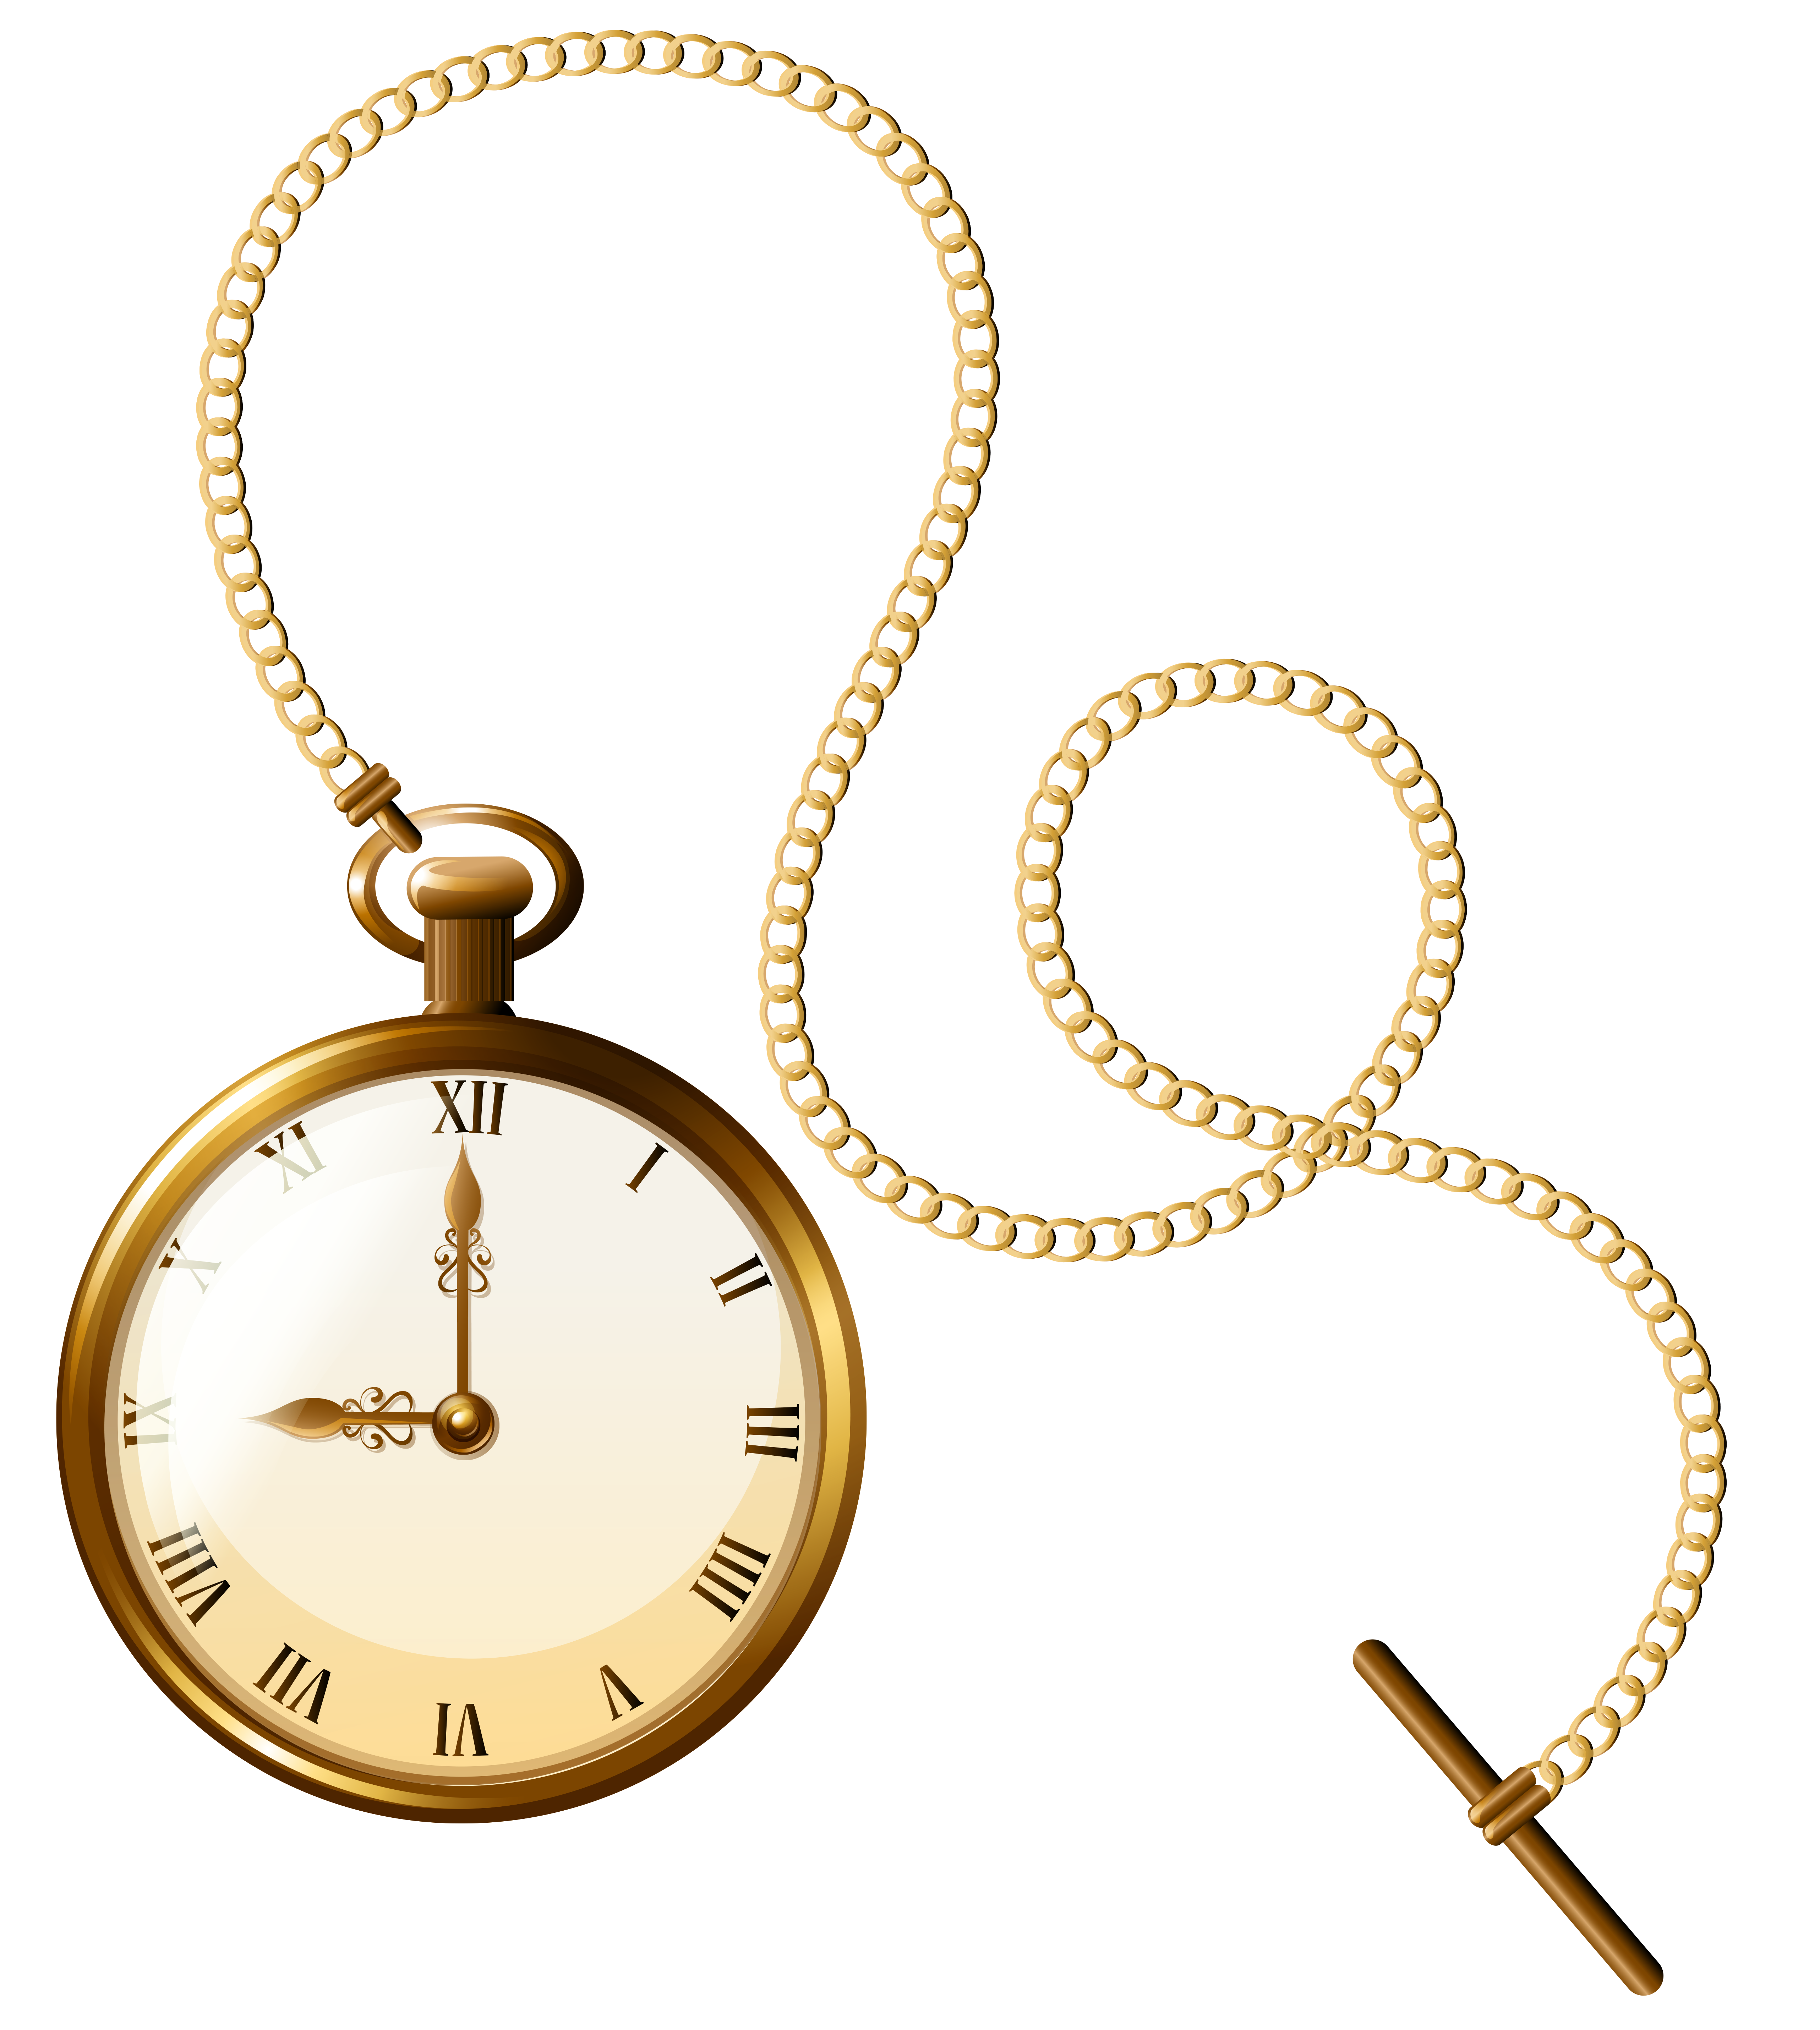 clipart royalty free library Gold watch clock png. Pocket clipart.